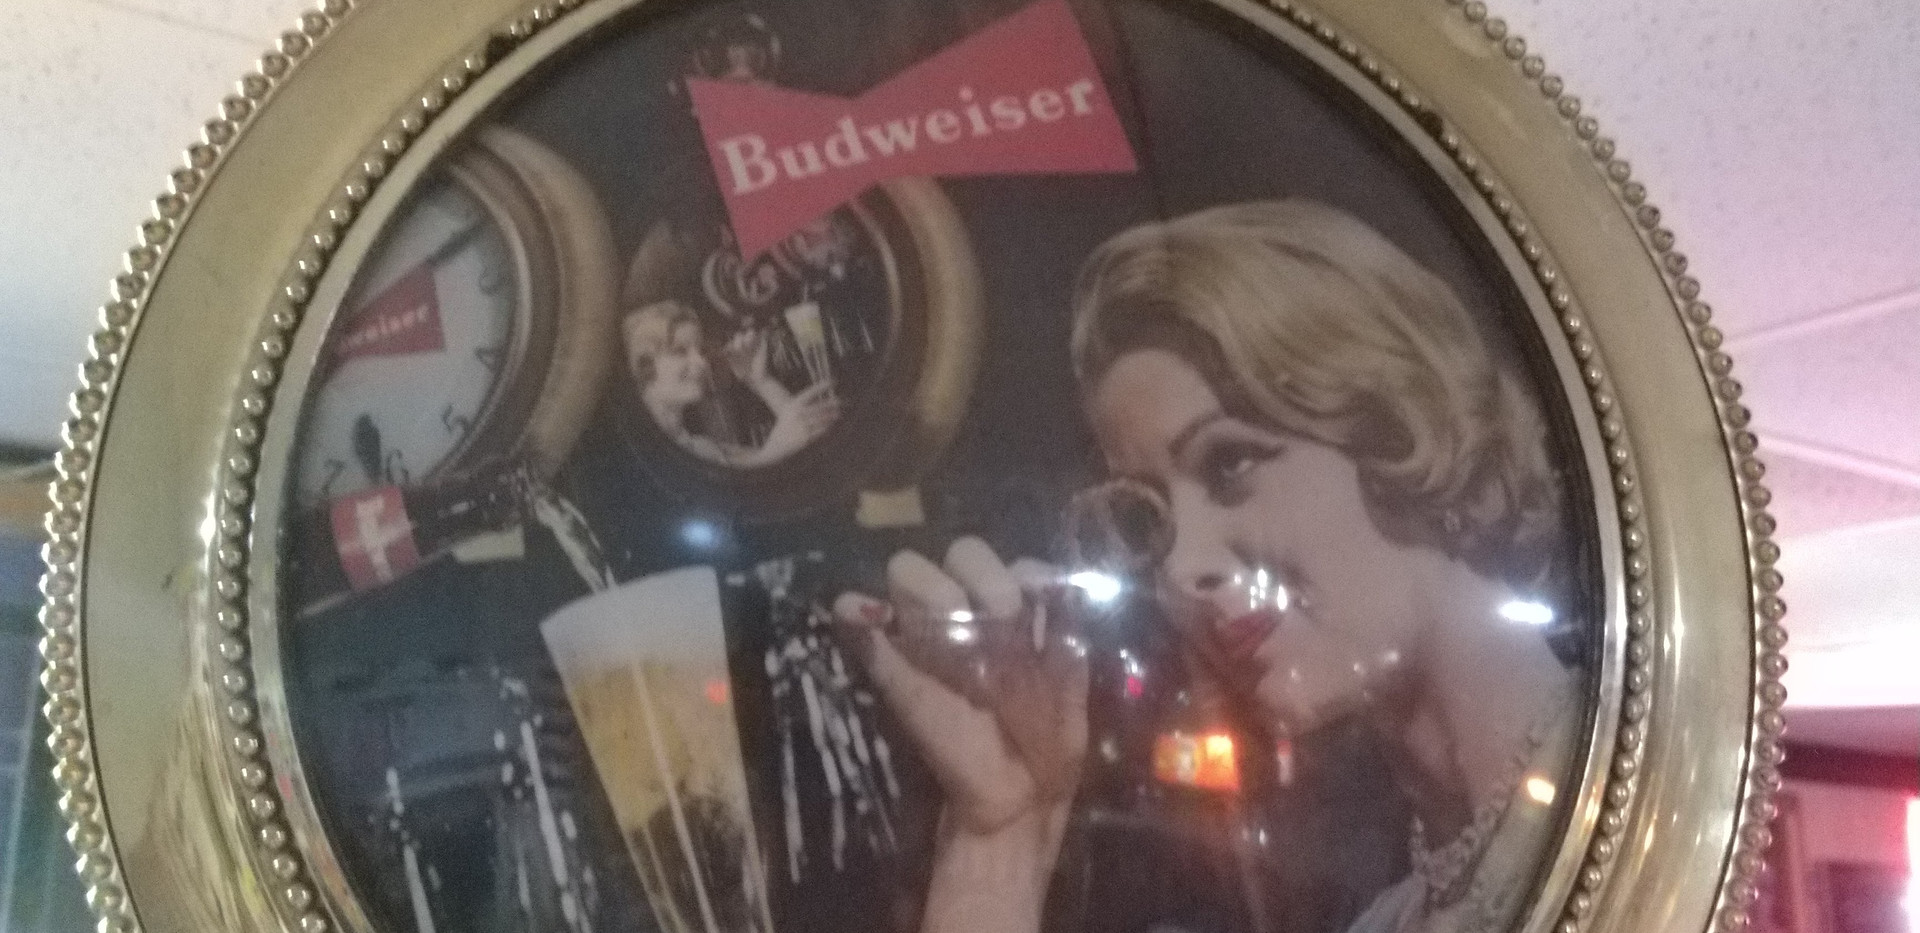 Budweiser Spinner Light up.jpg